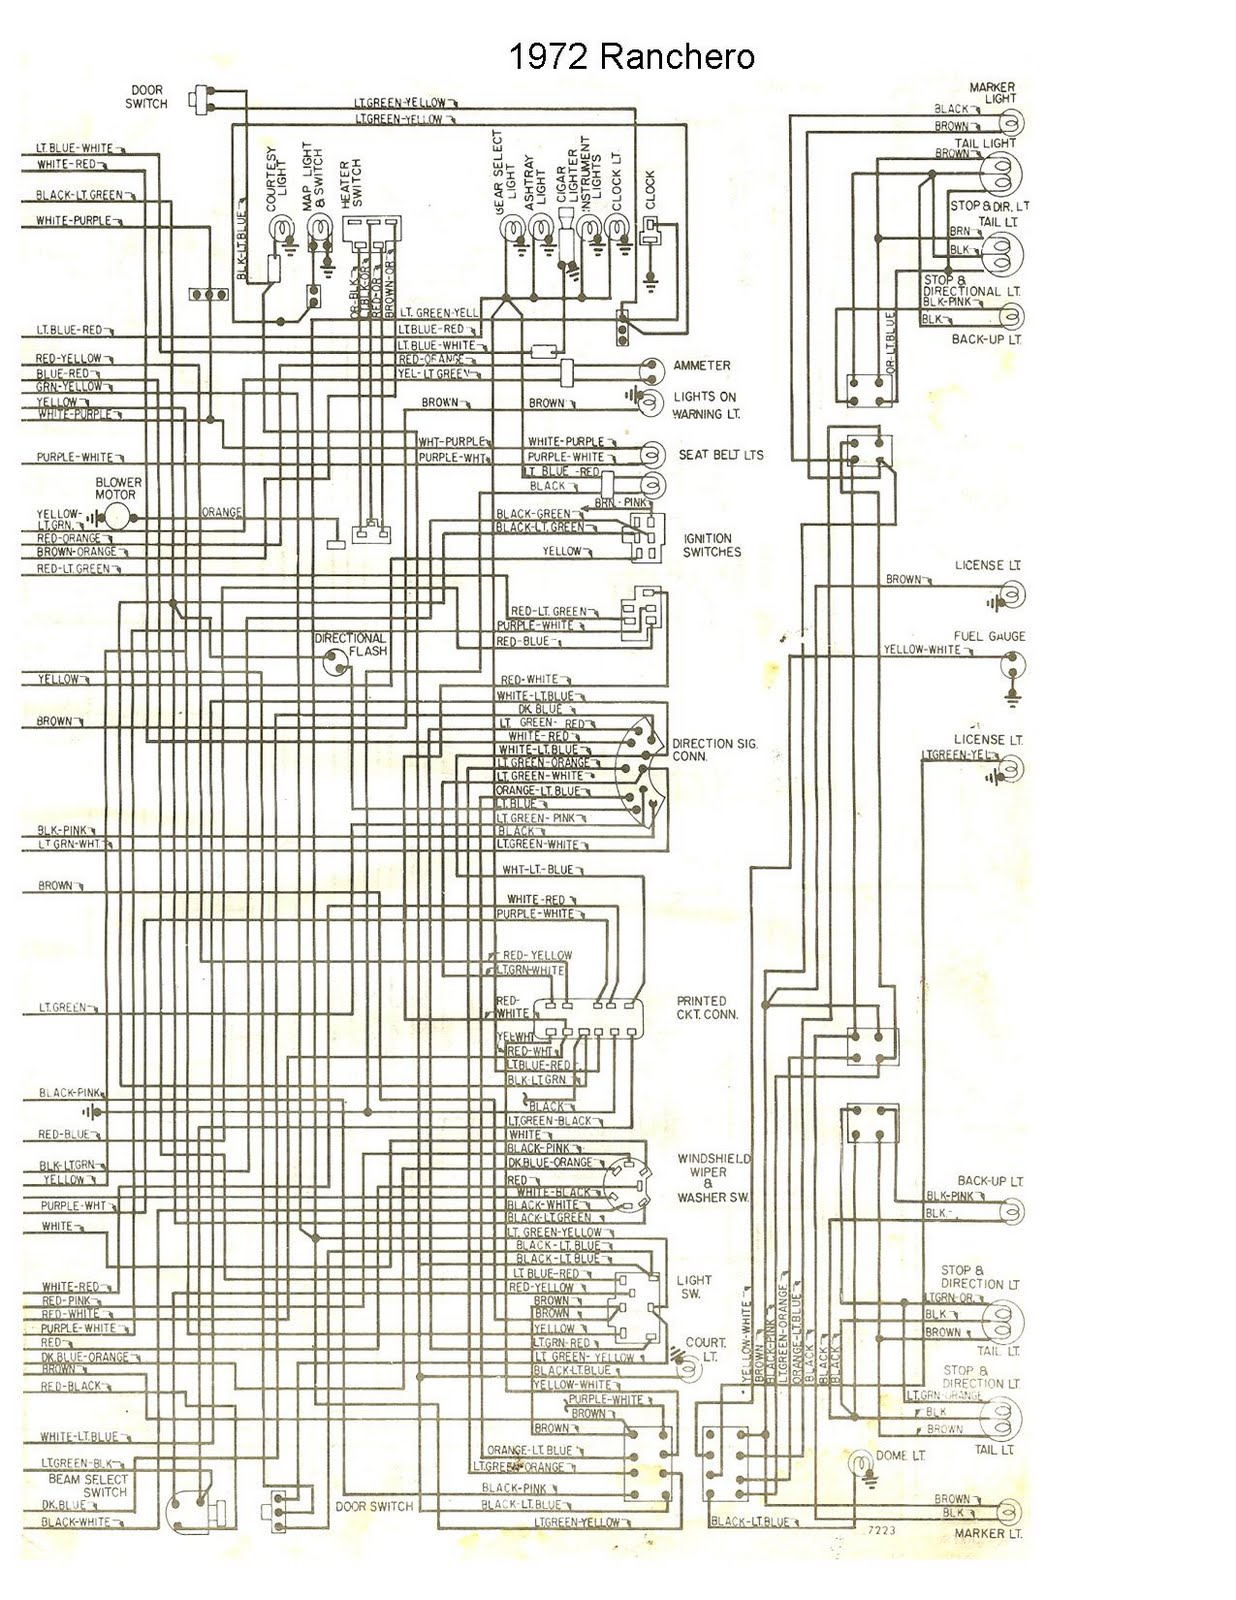 Peachy 1961 1963 Ford F 100 Wiring Diagram Basic Electronics Wiring Diagram Wiring Cloud Xortanetembamohammedshrineorg